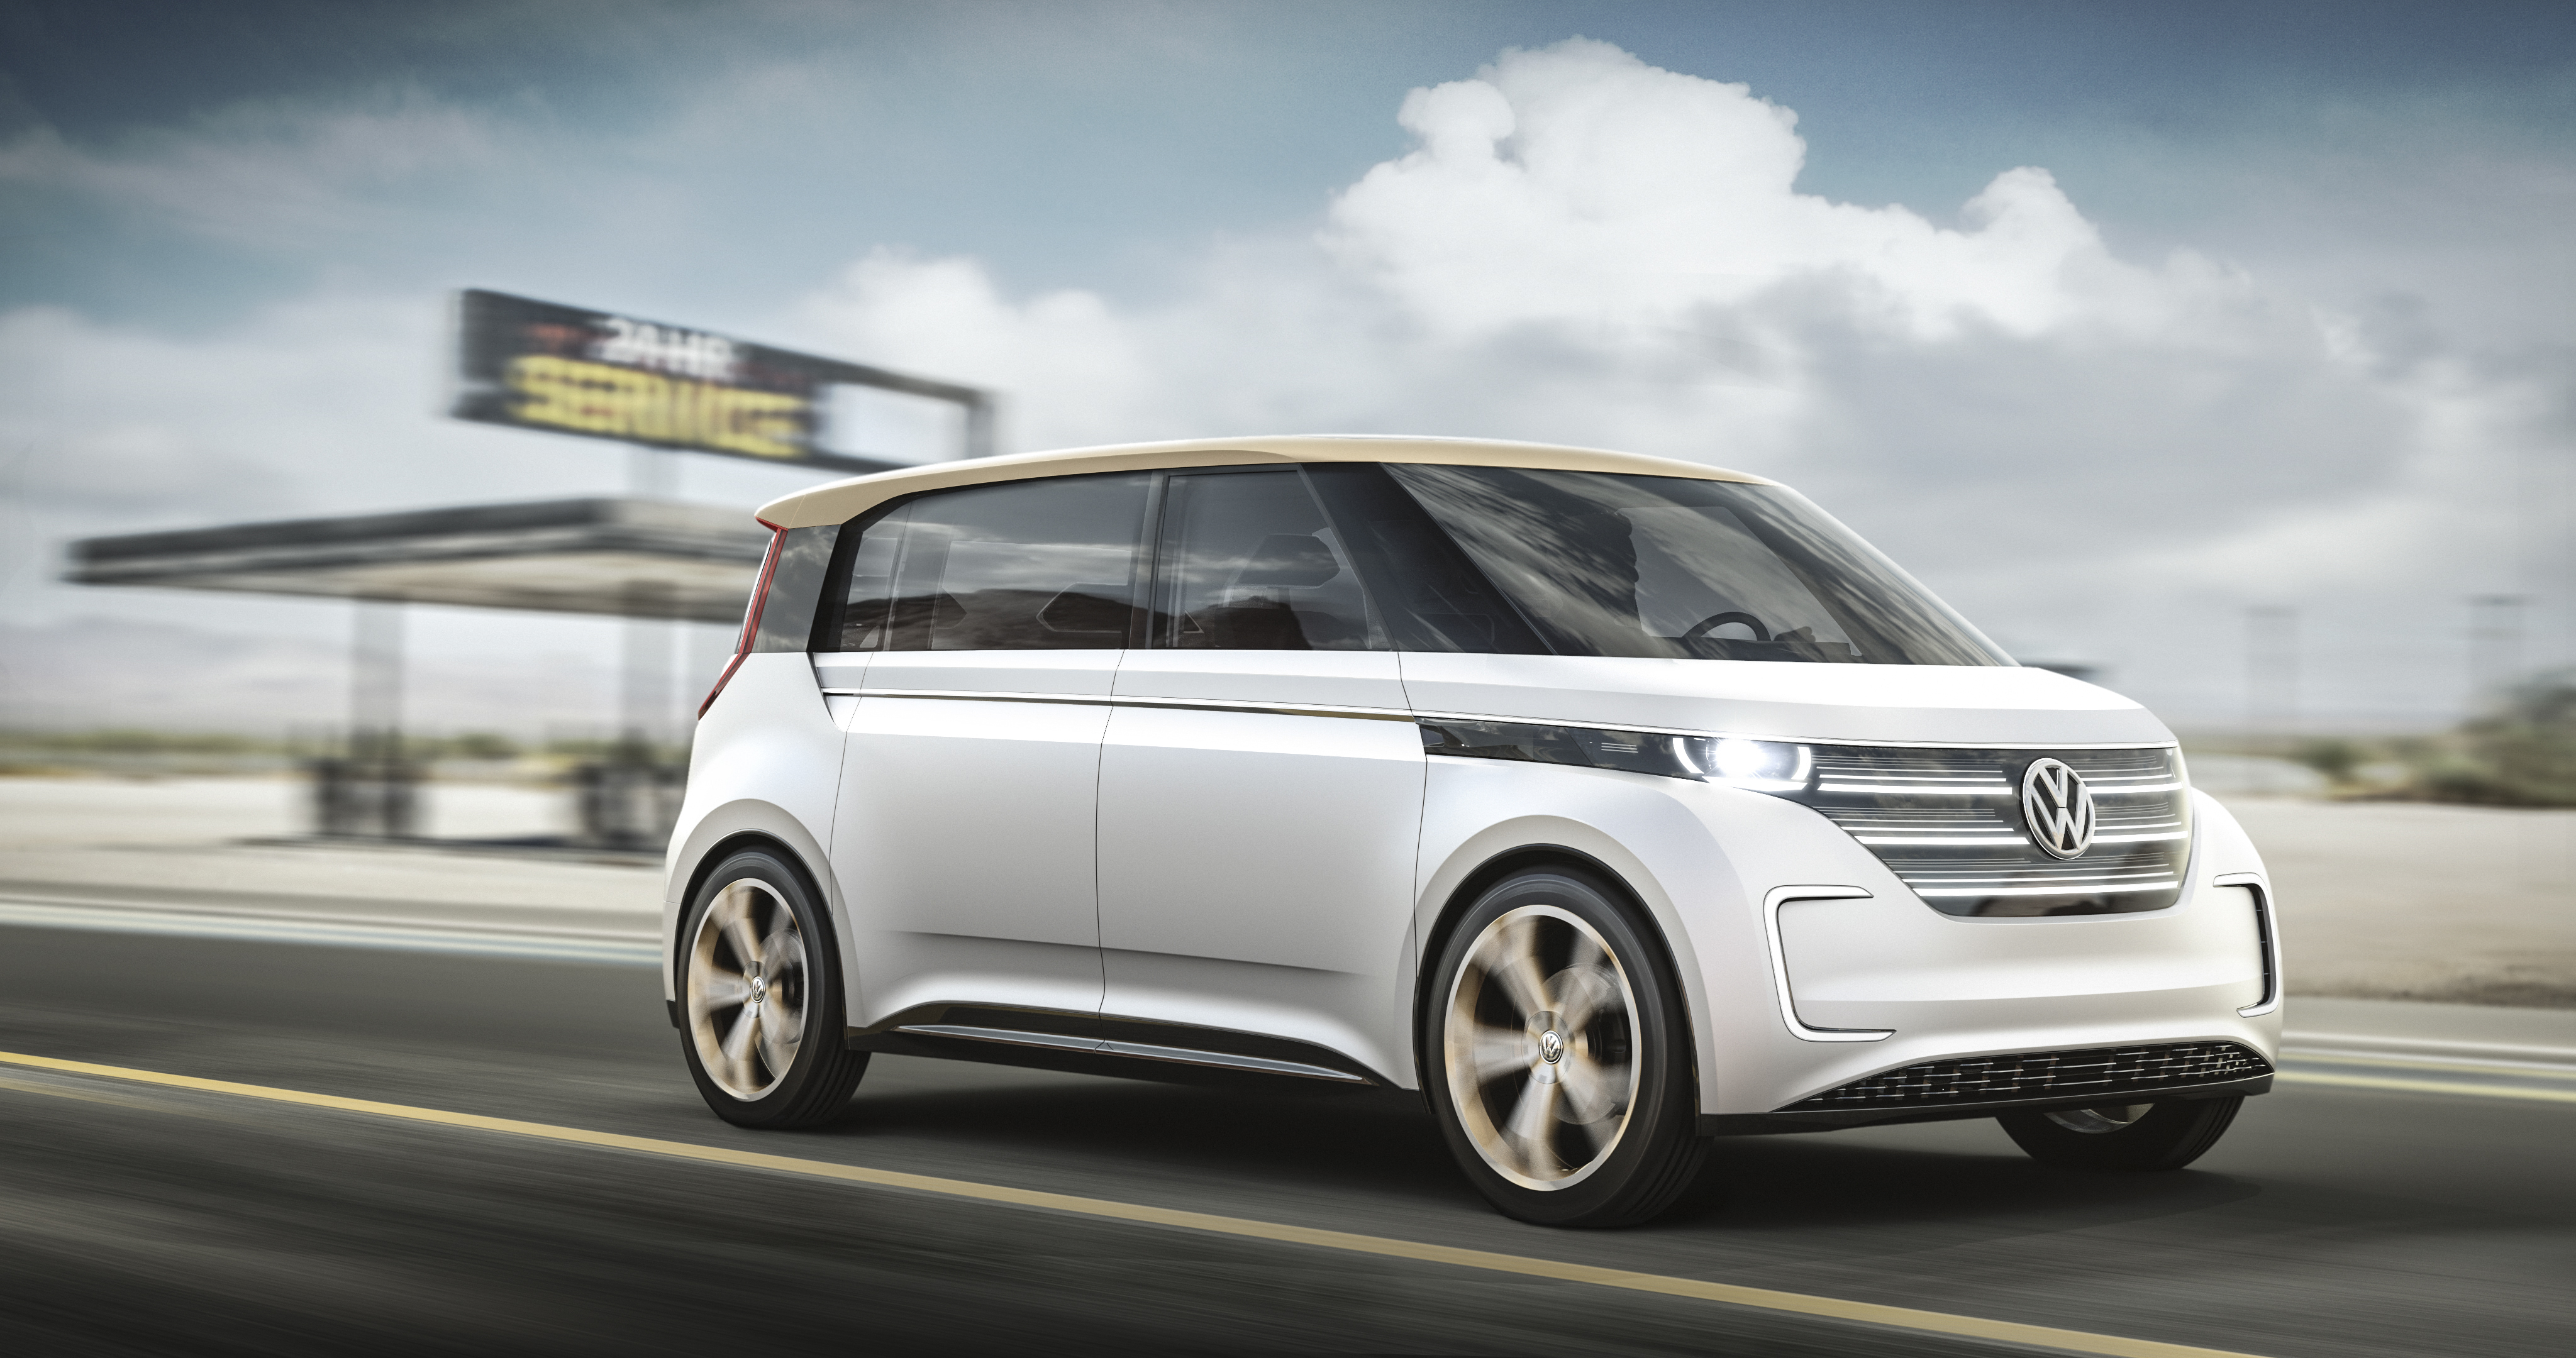 rhxqe5sfvuvzu49ptgni - The BUDD-E CES Concept Car is Volkswagen's new electric bus